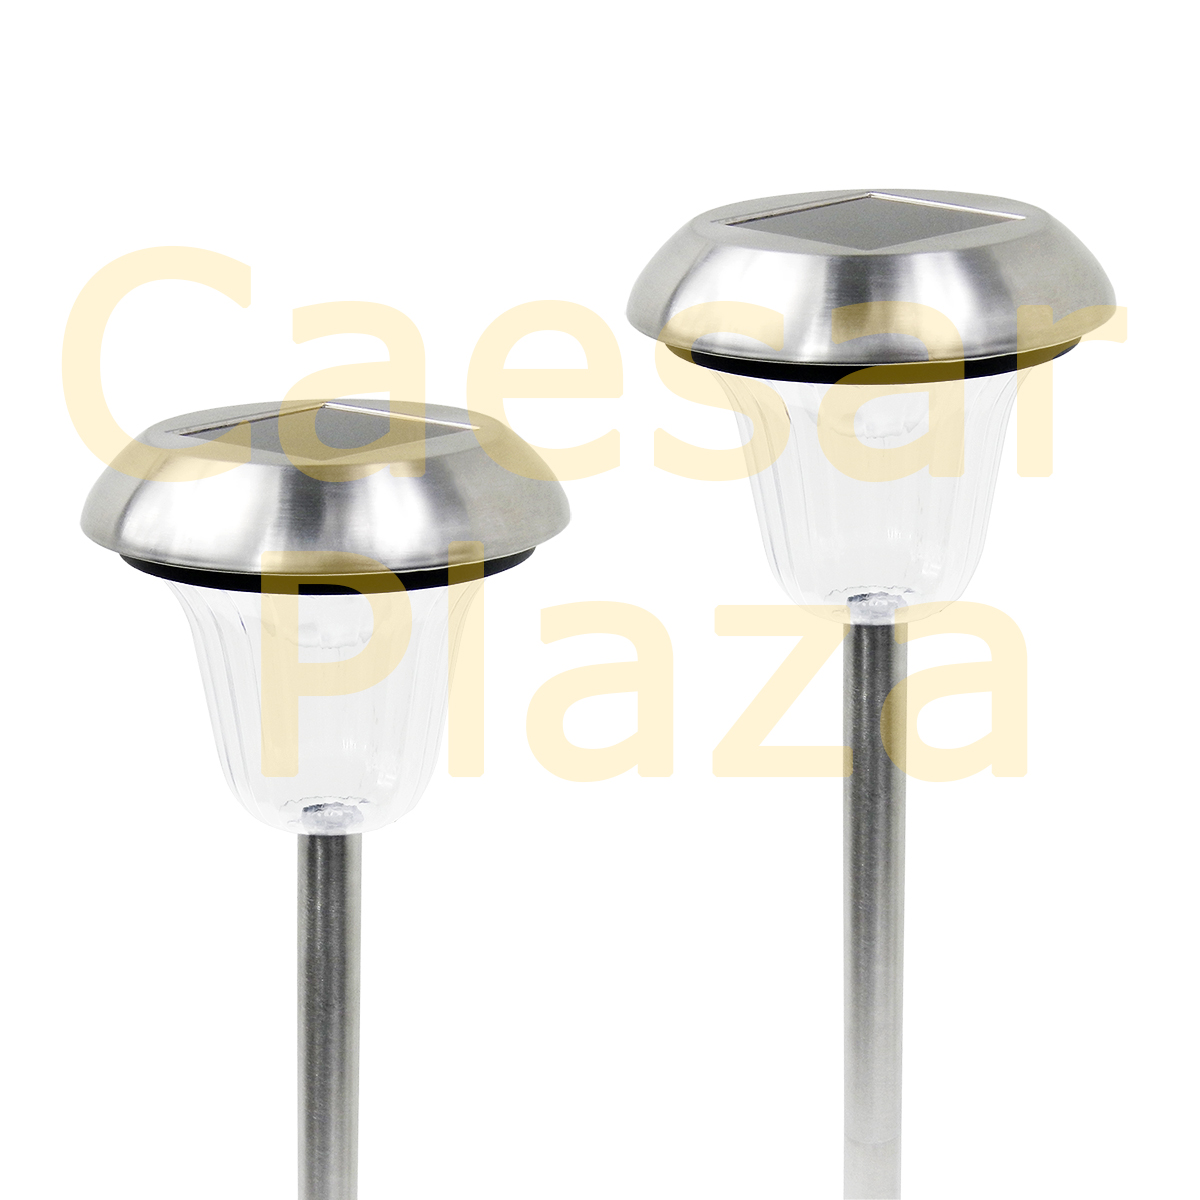 8 Outdoor Stainless Steel Color Changing / White LED Solar